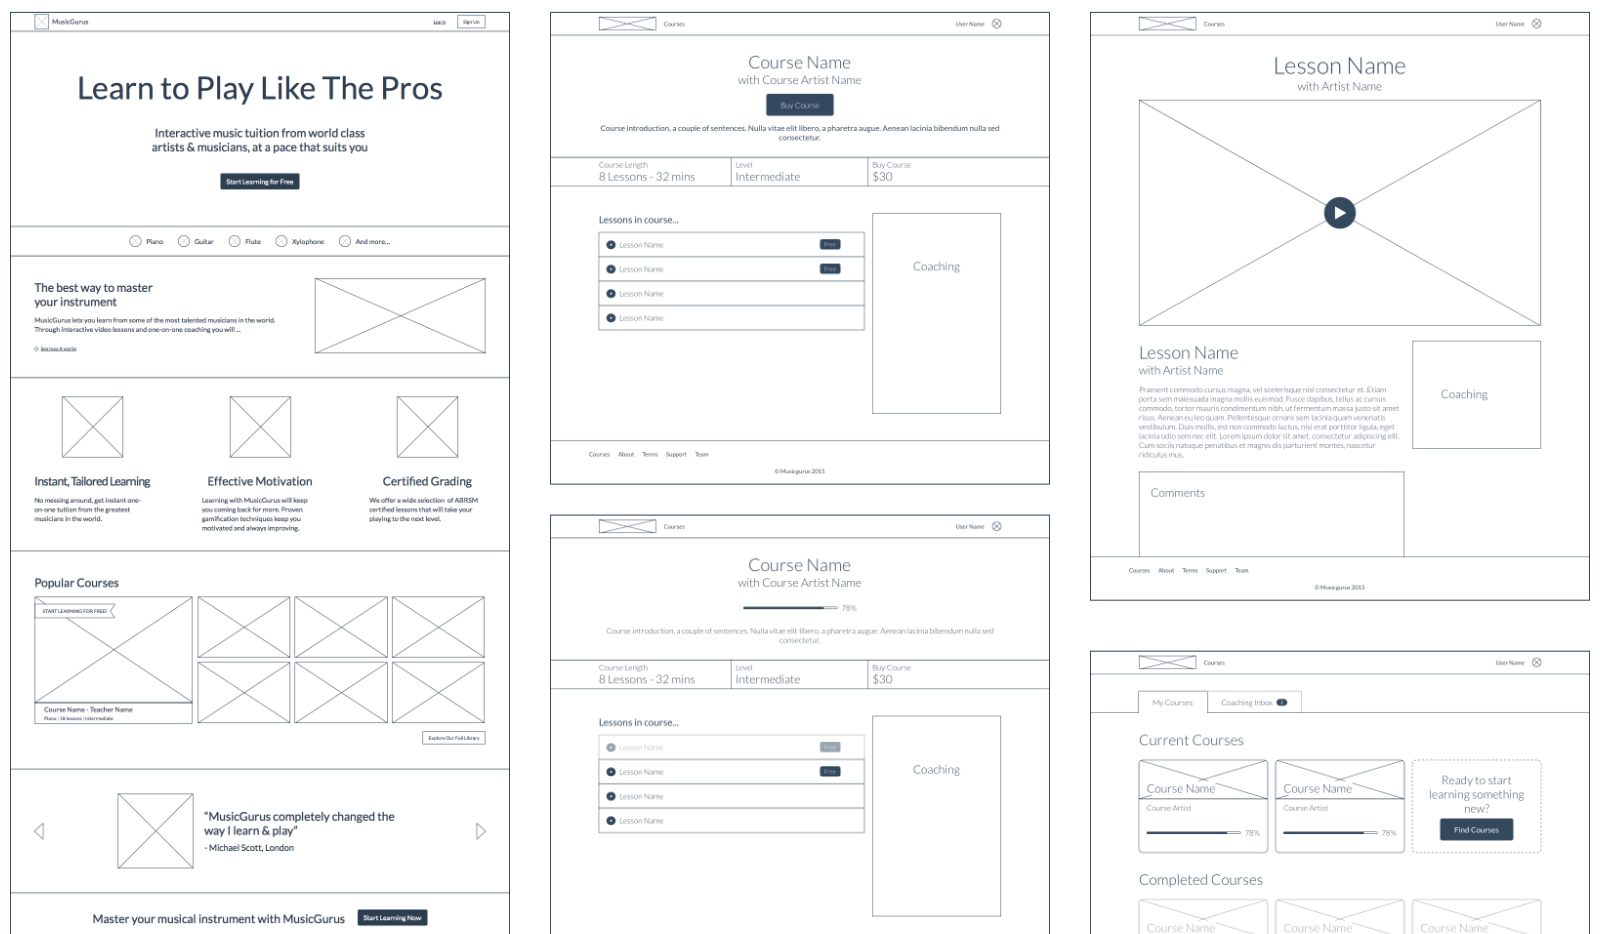 Screenshots of wireframes from the product design process